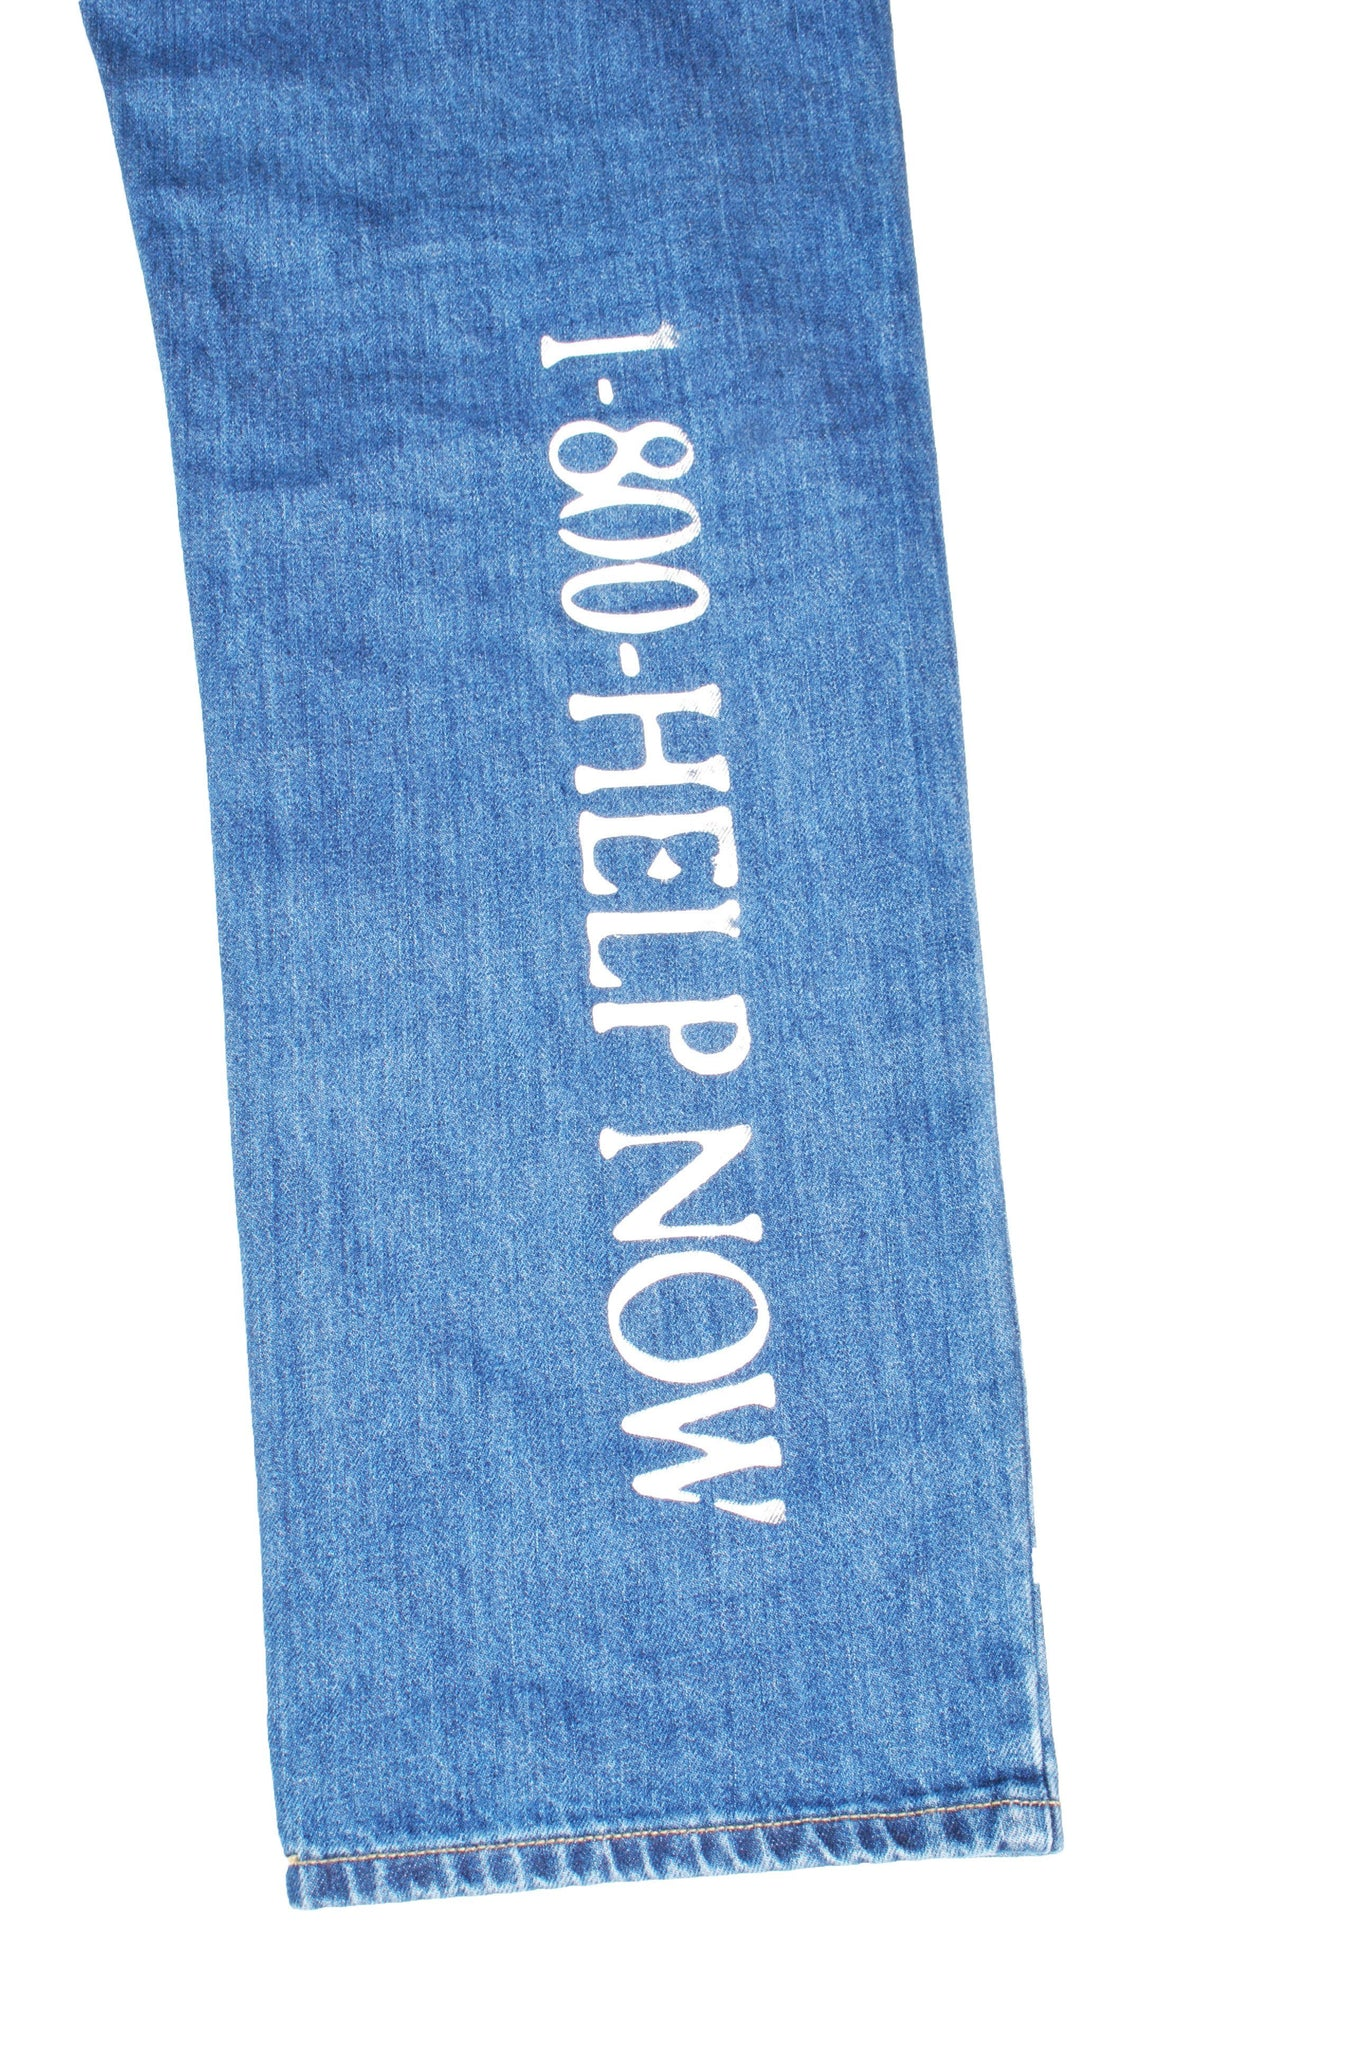 """1-800"" JEANS (INDIGO BLUE) - The Incorporated"